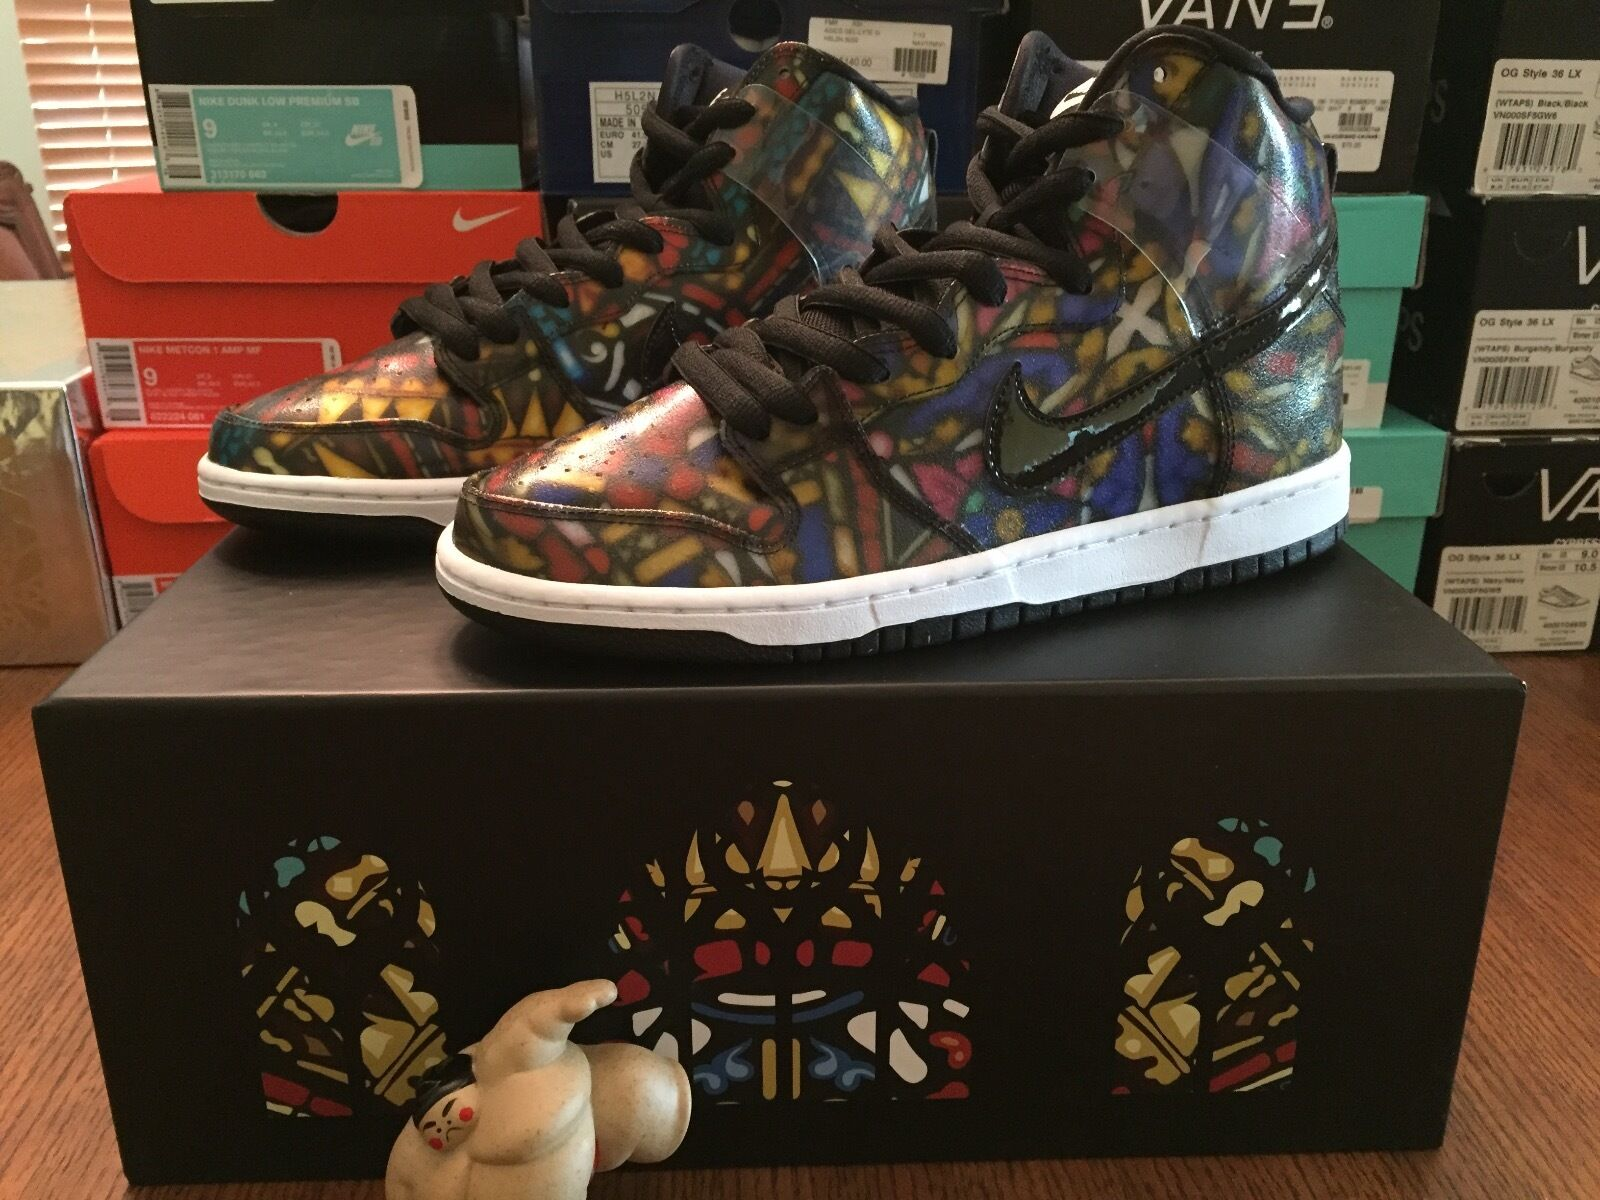 Nike SB x CNCPTS Dunk Hi Pro 9 SB Stained Glass sz 9 Pro Concepts Grail Collection DS 2e2f77